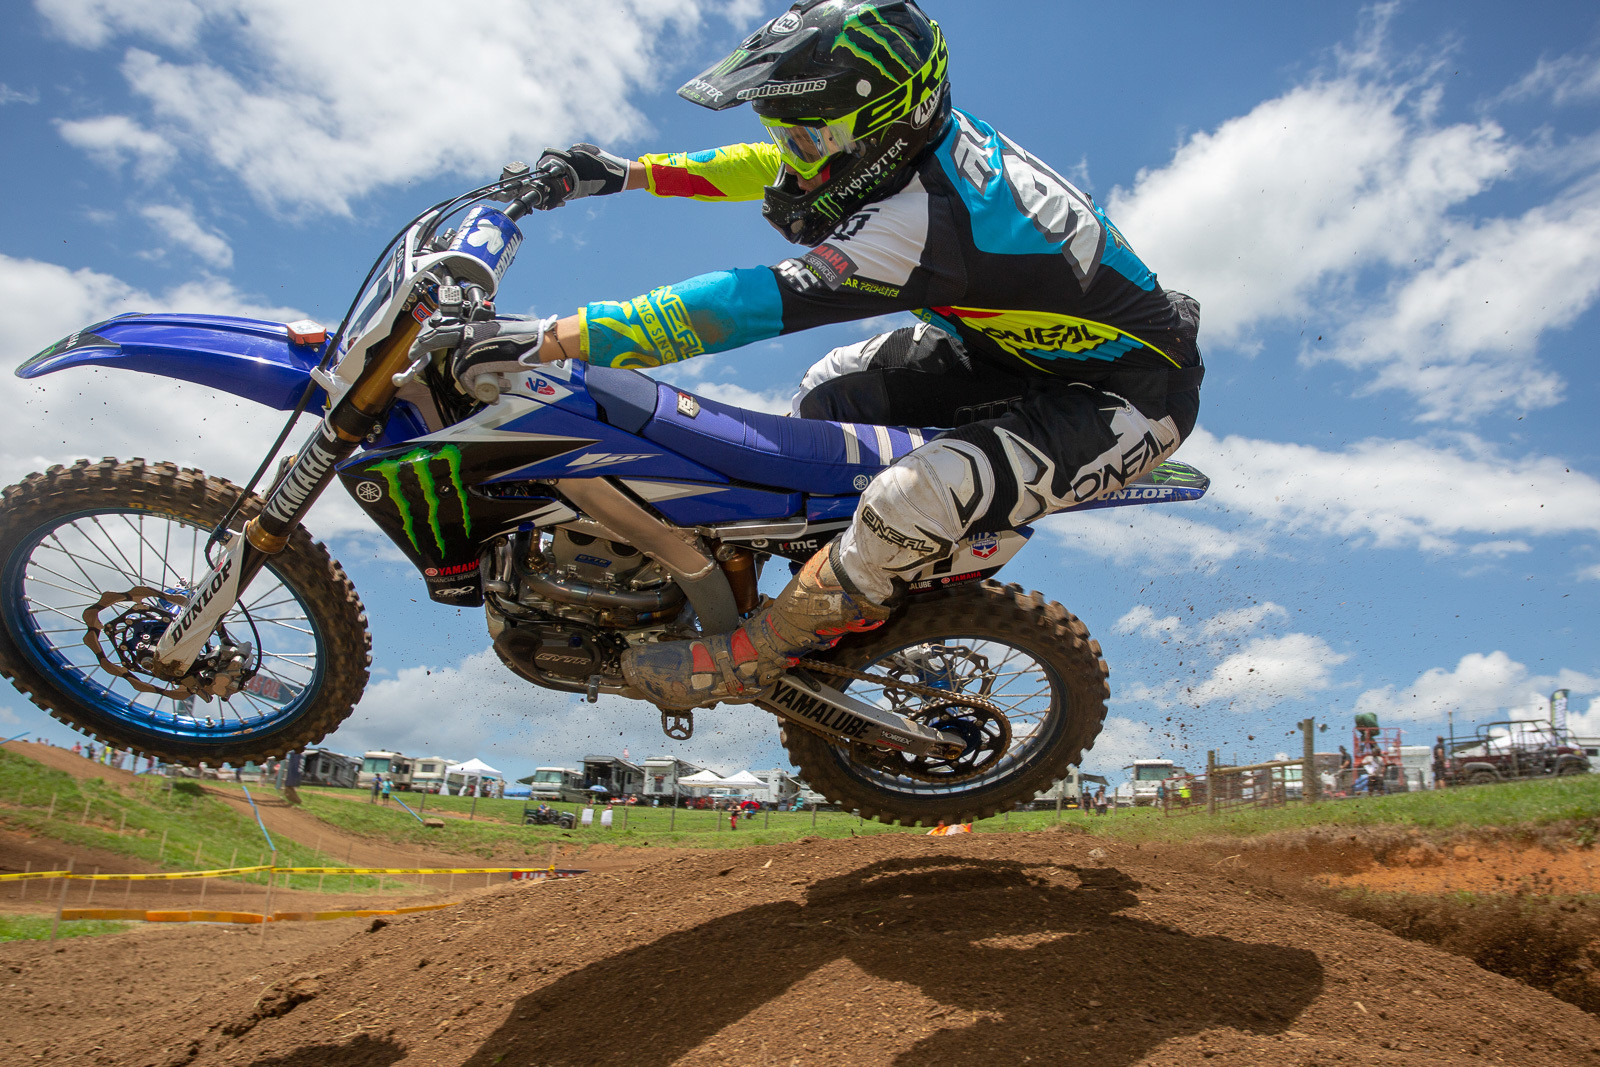 Muddy Creek was the last round of fill-in duty for Alex Ray with the Monster Energy/Yamaha Factory Racing crew. Cooper Webb should be back in the saddle for Southwick.